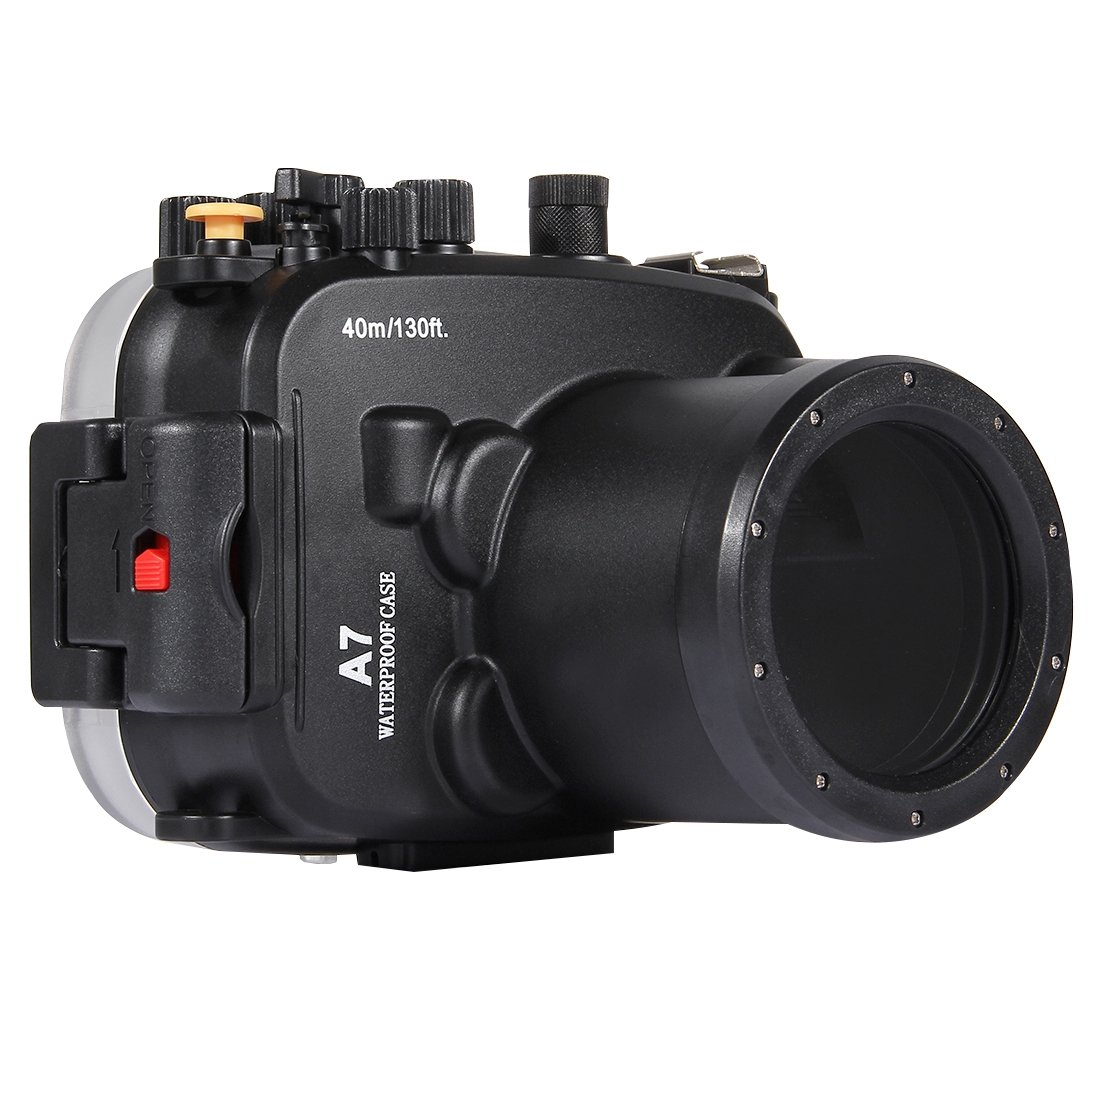 PULUZ Professinal Underwater Camera Housing Waterproof Diving Case for Sony, Water Resistance Depth: 40m/130ft for Sony A7/A7S/A7R